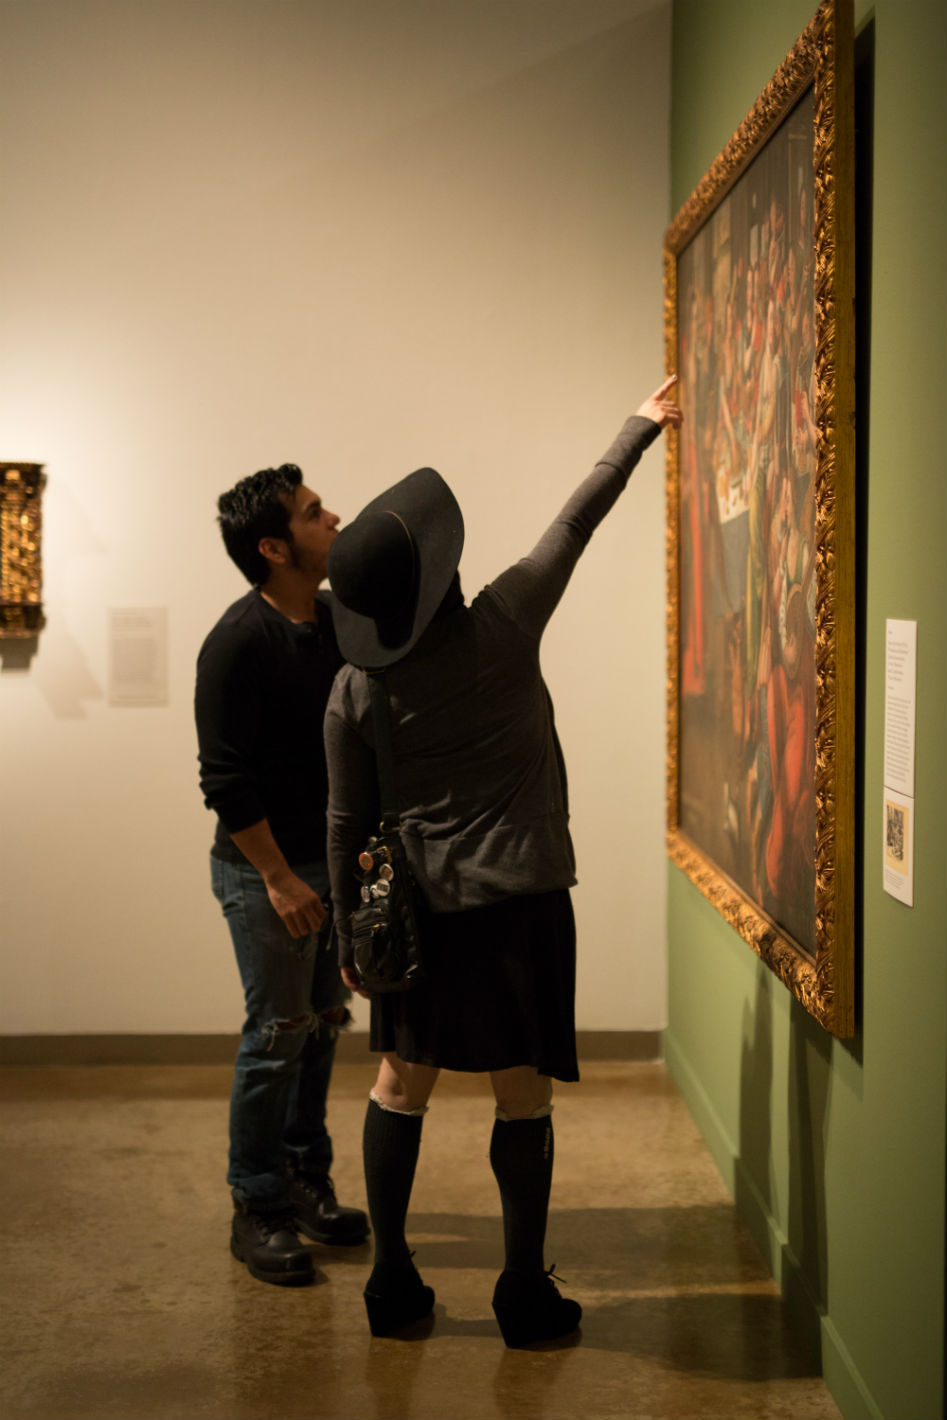 People looking at painting.